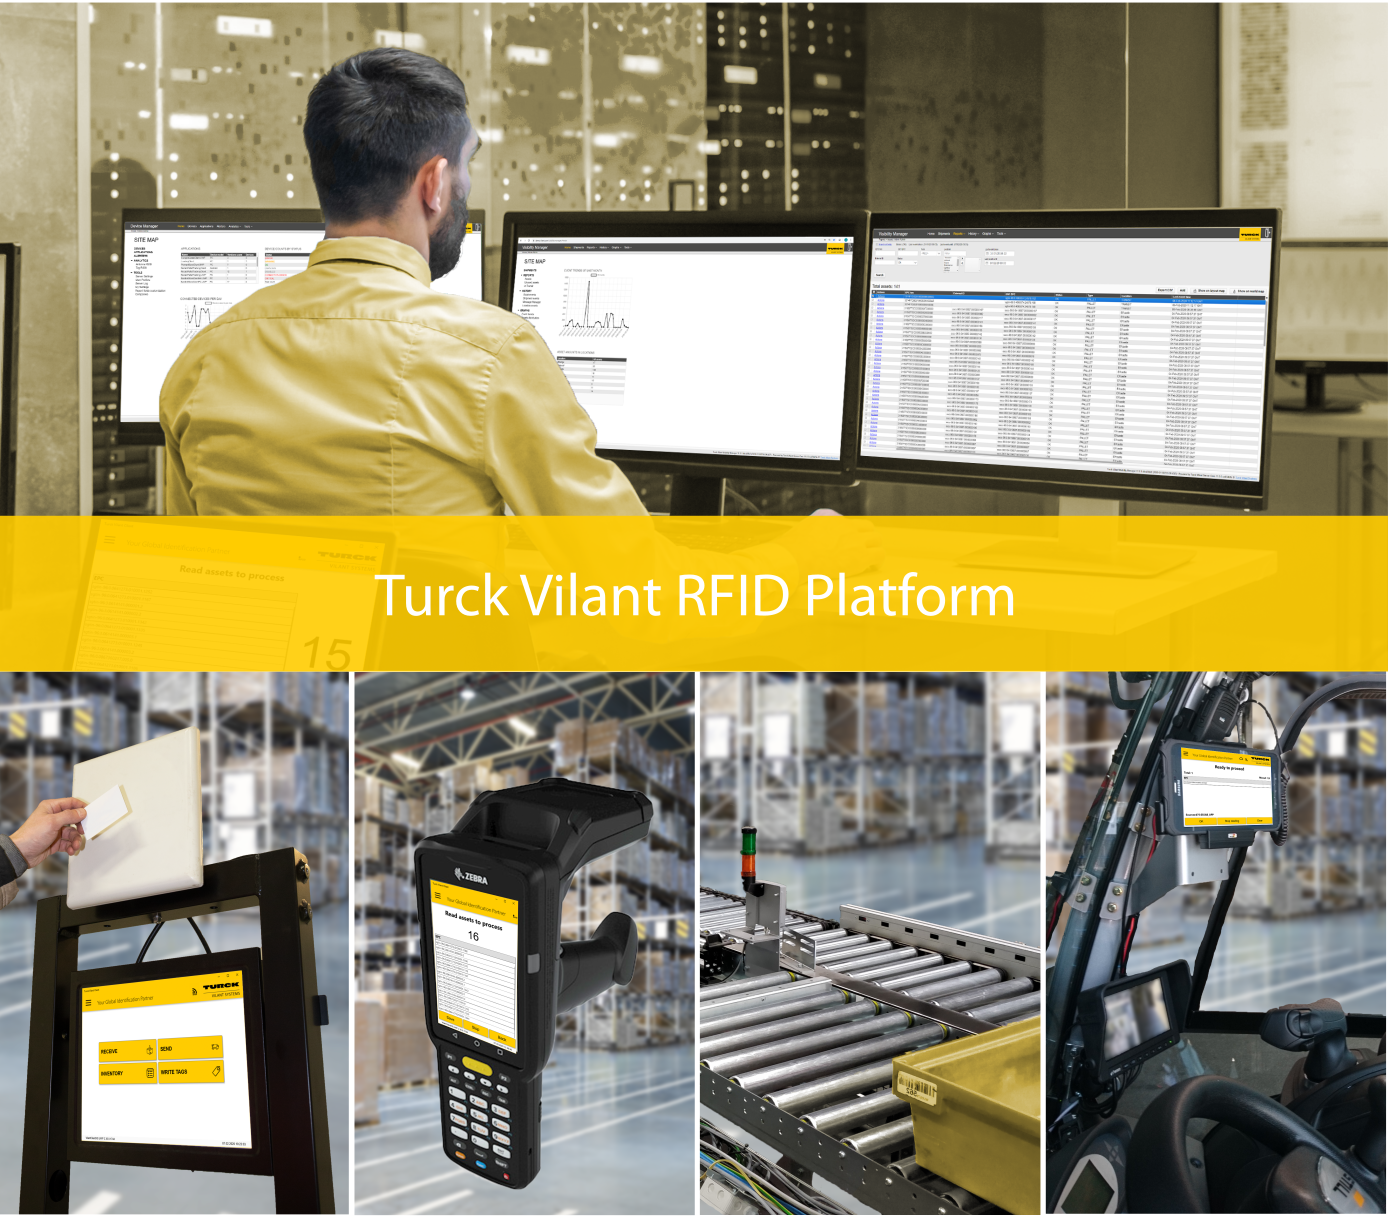 RFID for forklifts, gates, conveyor belts and more